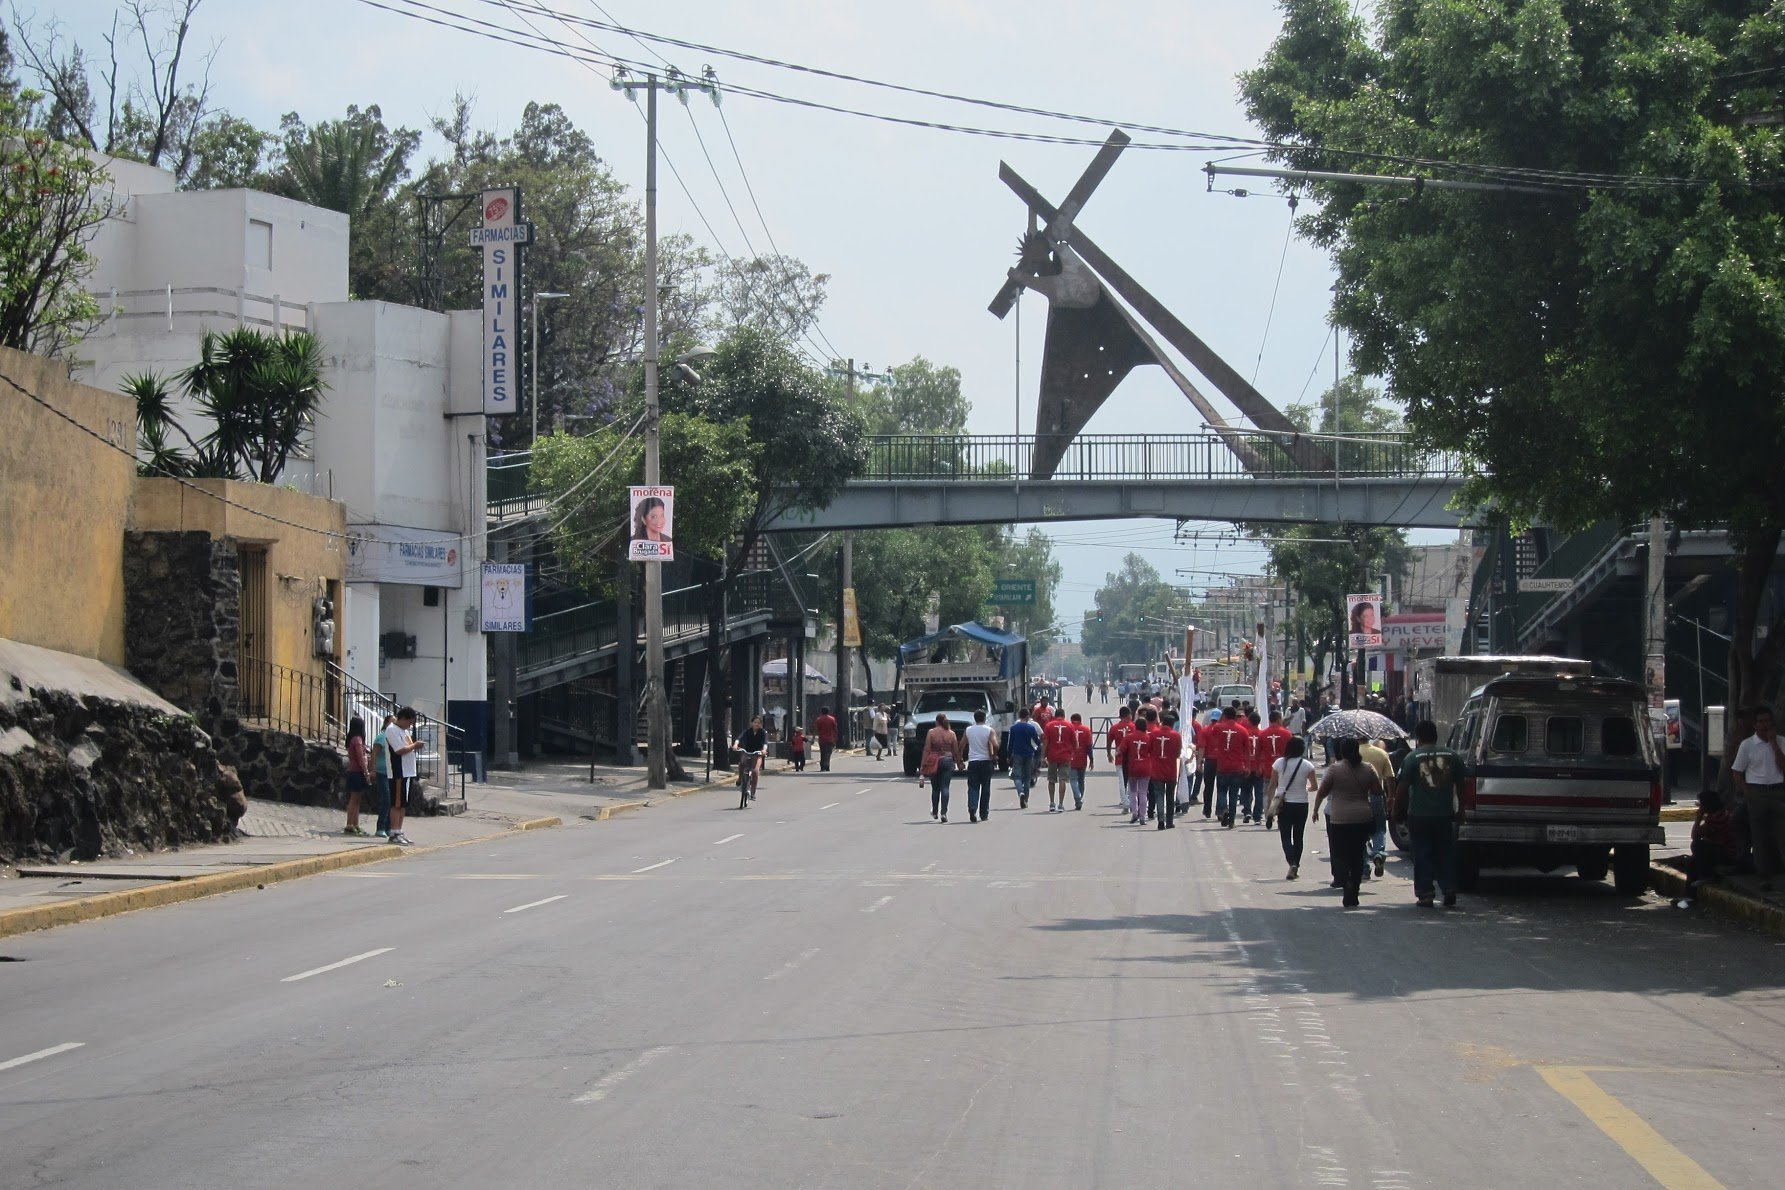 I randomly ended up in Iztapalapa three times during my stay in Mexico City. The first was for the cross bearing ceremony pictured above, and the second and third were for parties. I didn't take any pictures of those.